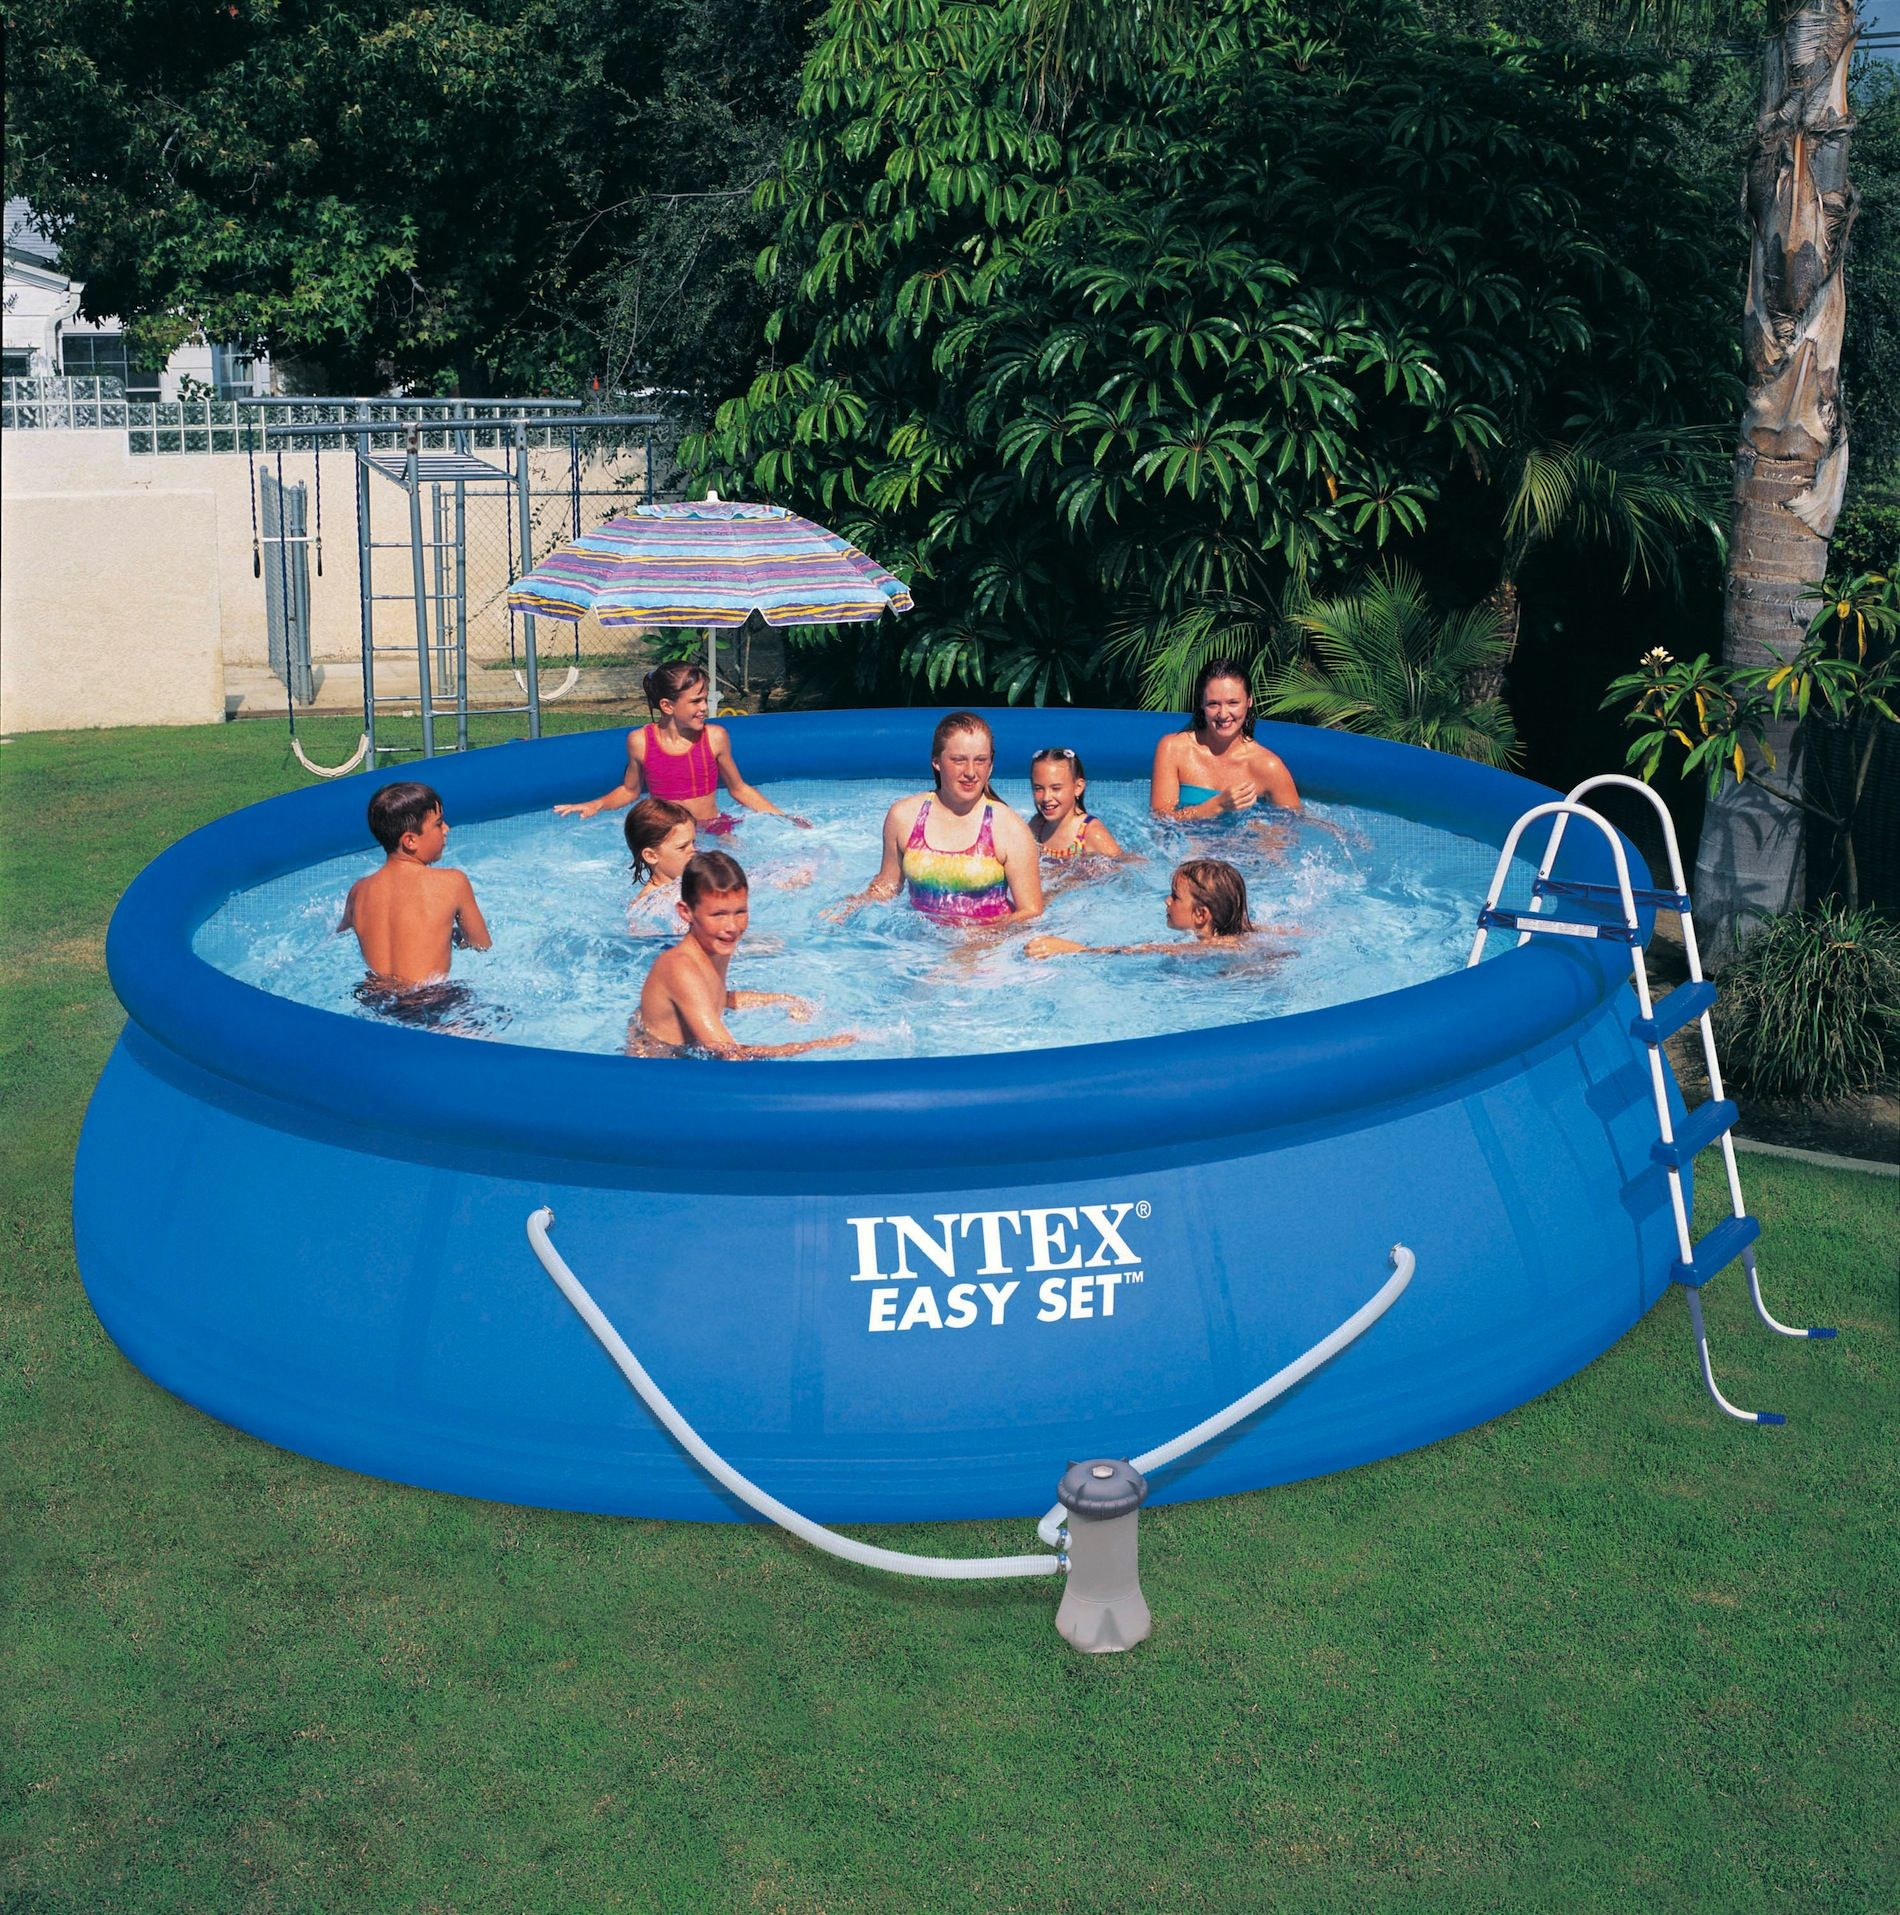 Intex 16 X 42 Easy Set Pool W Filter Pump Ladder Easy Set